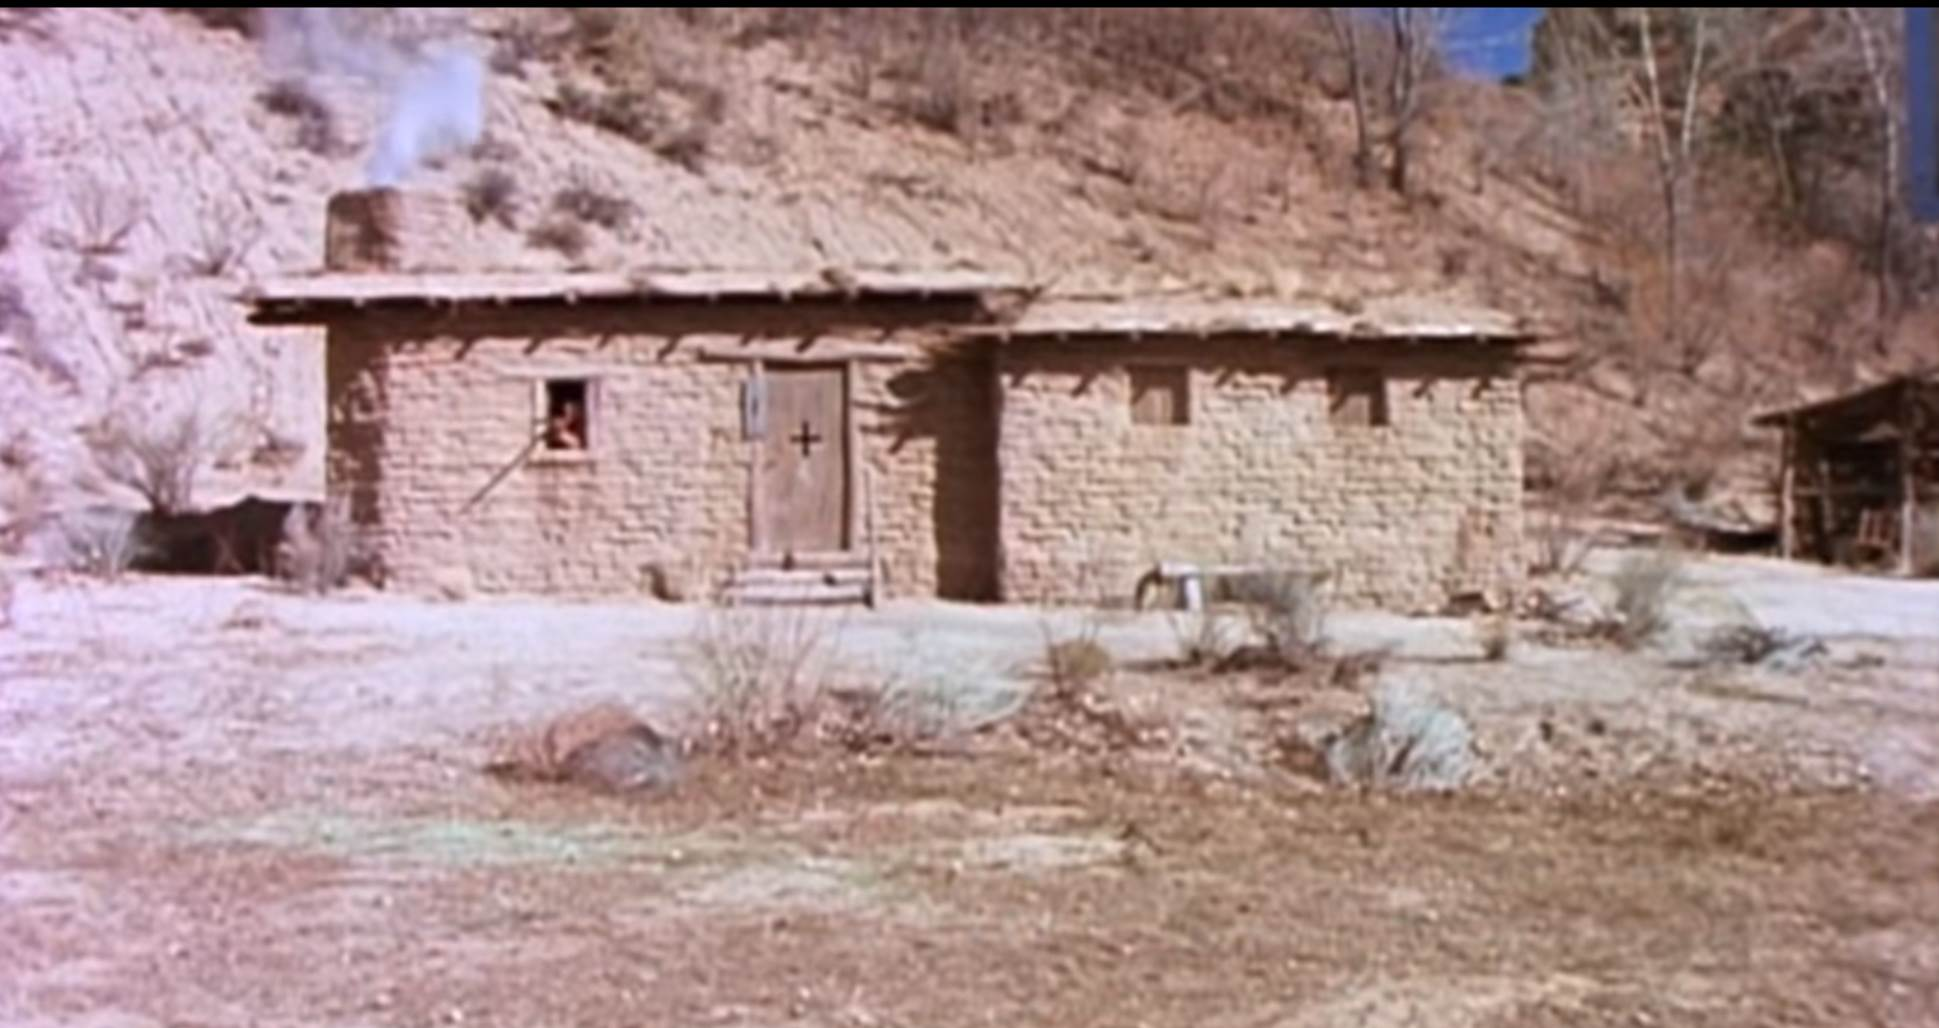 Josey Wales Filming Location? | RPF Costume and Prop Maker